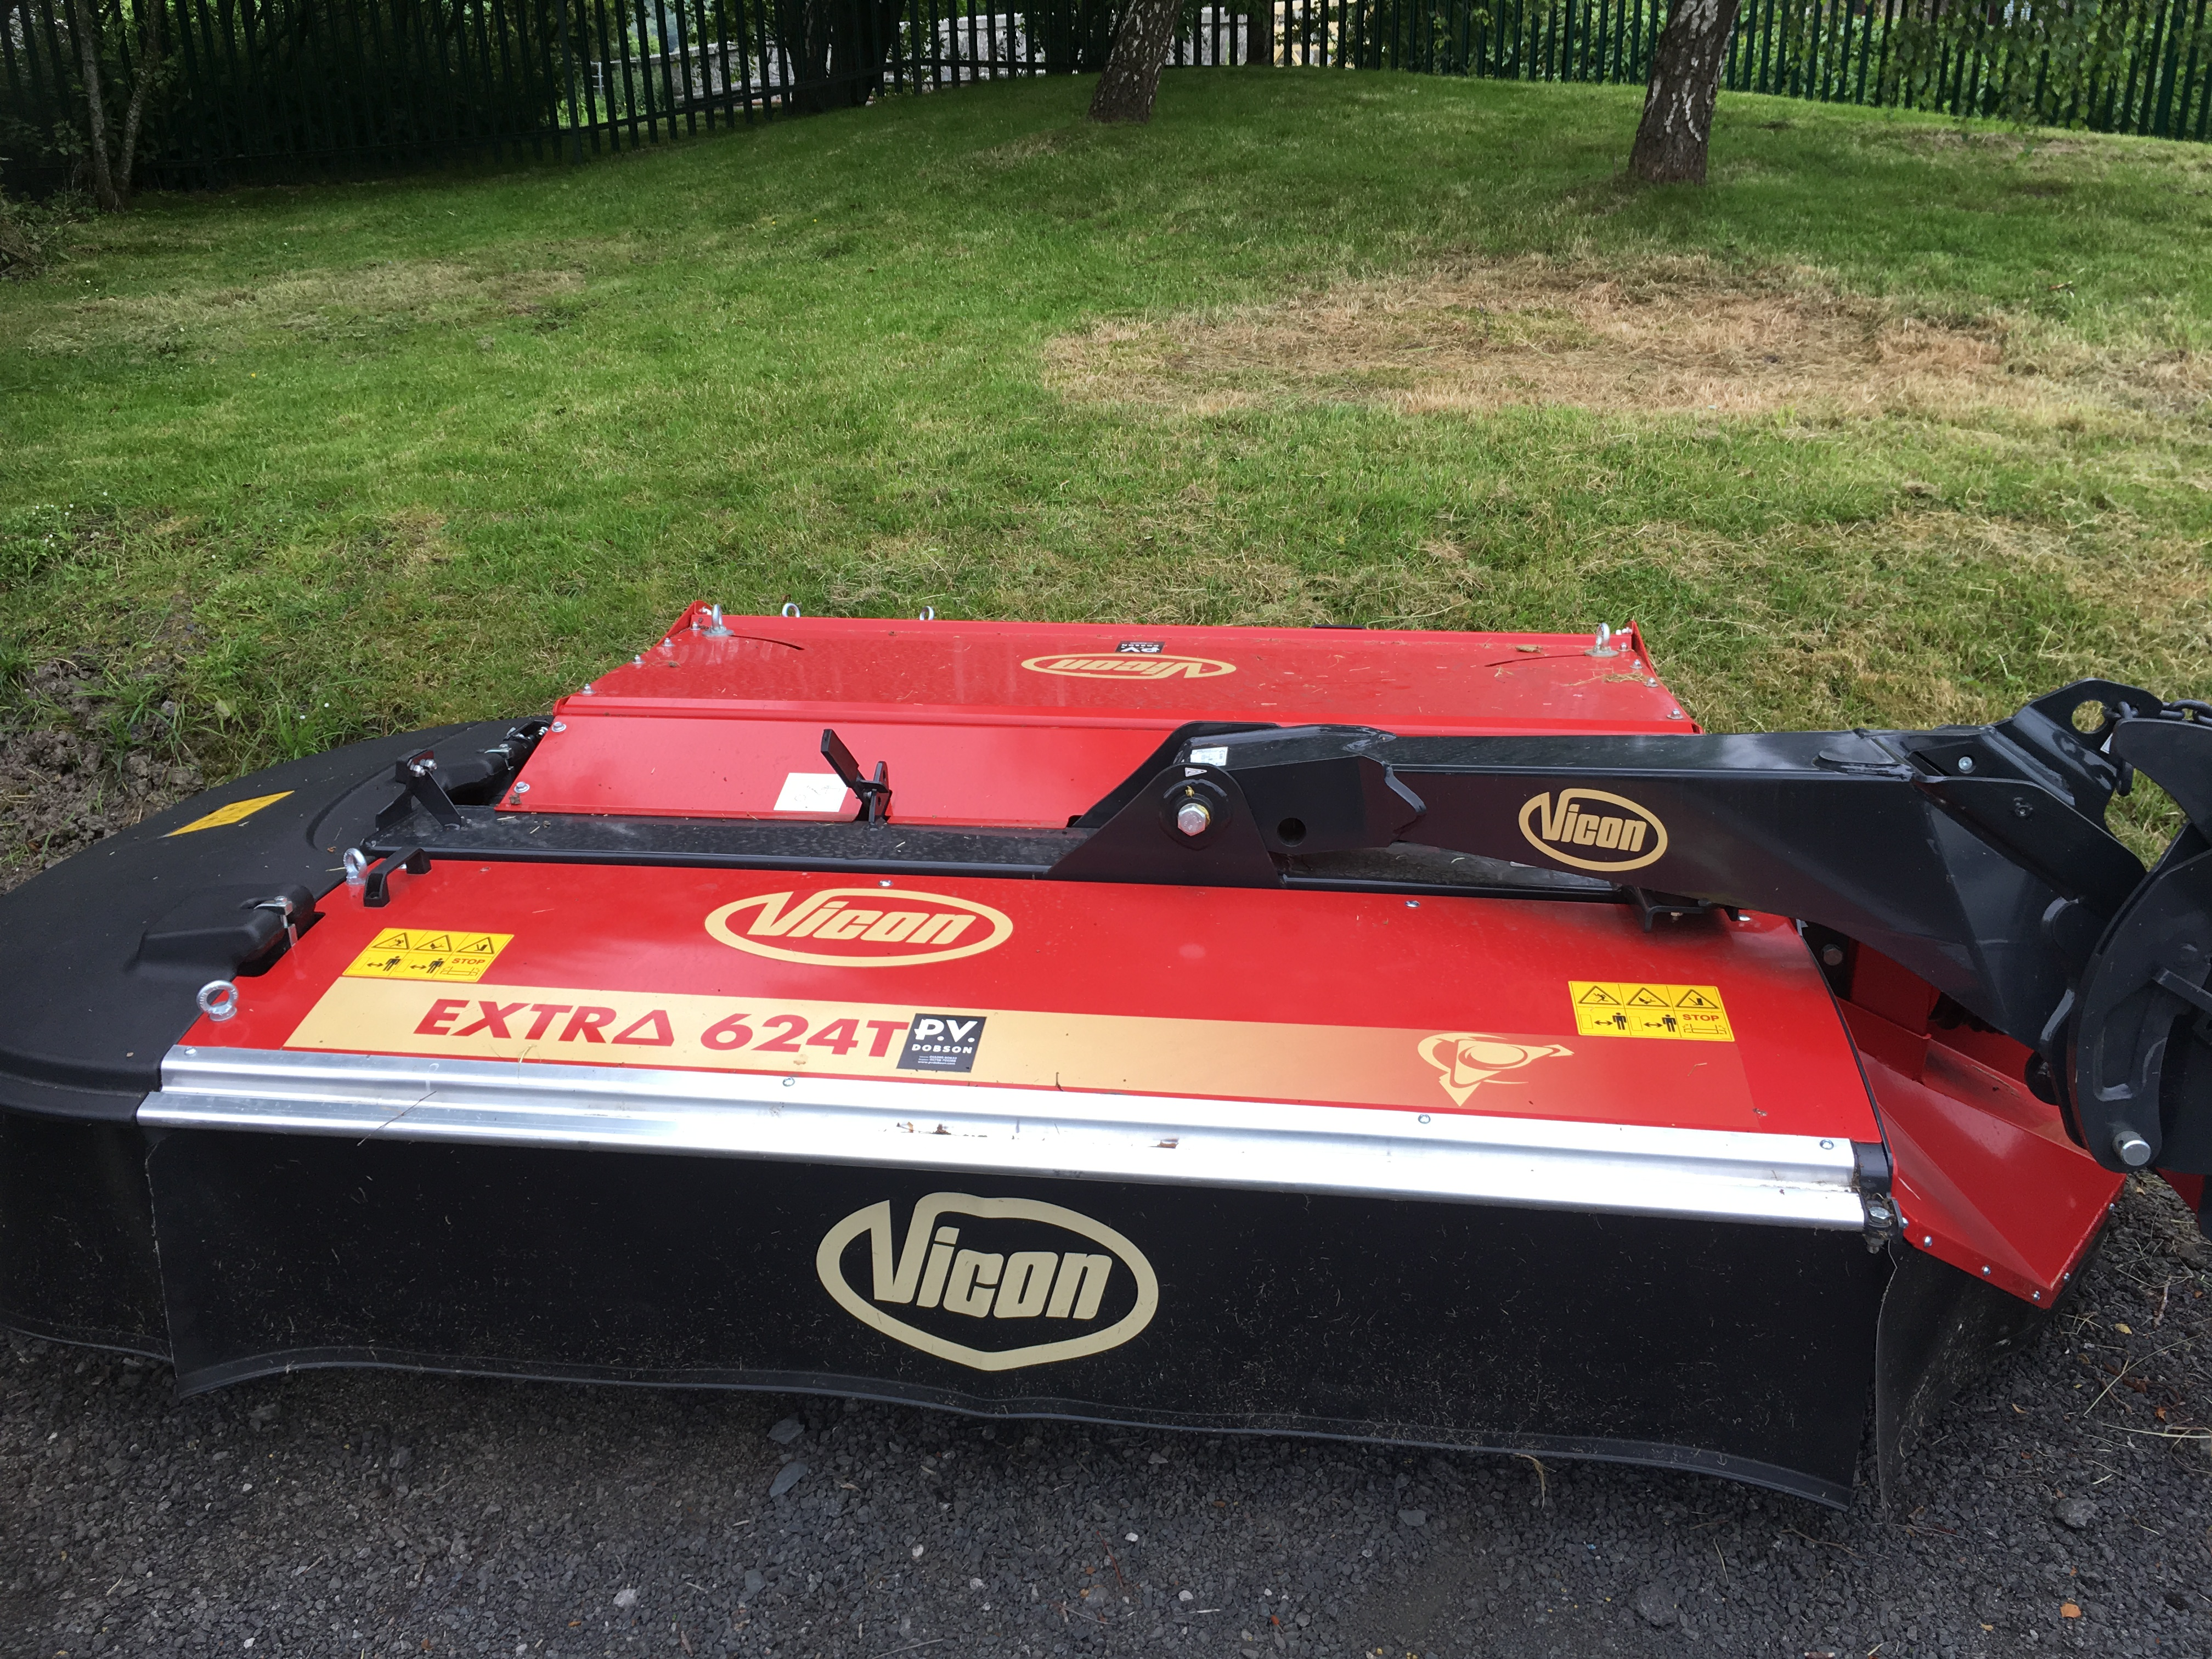 VICON EXTRA 624T MOWER CONDITIONER - PV Dobson